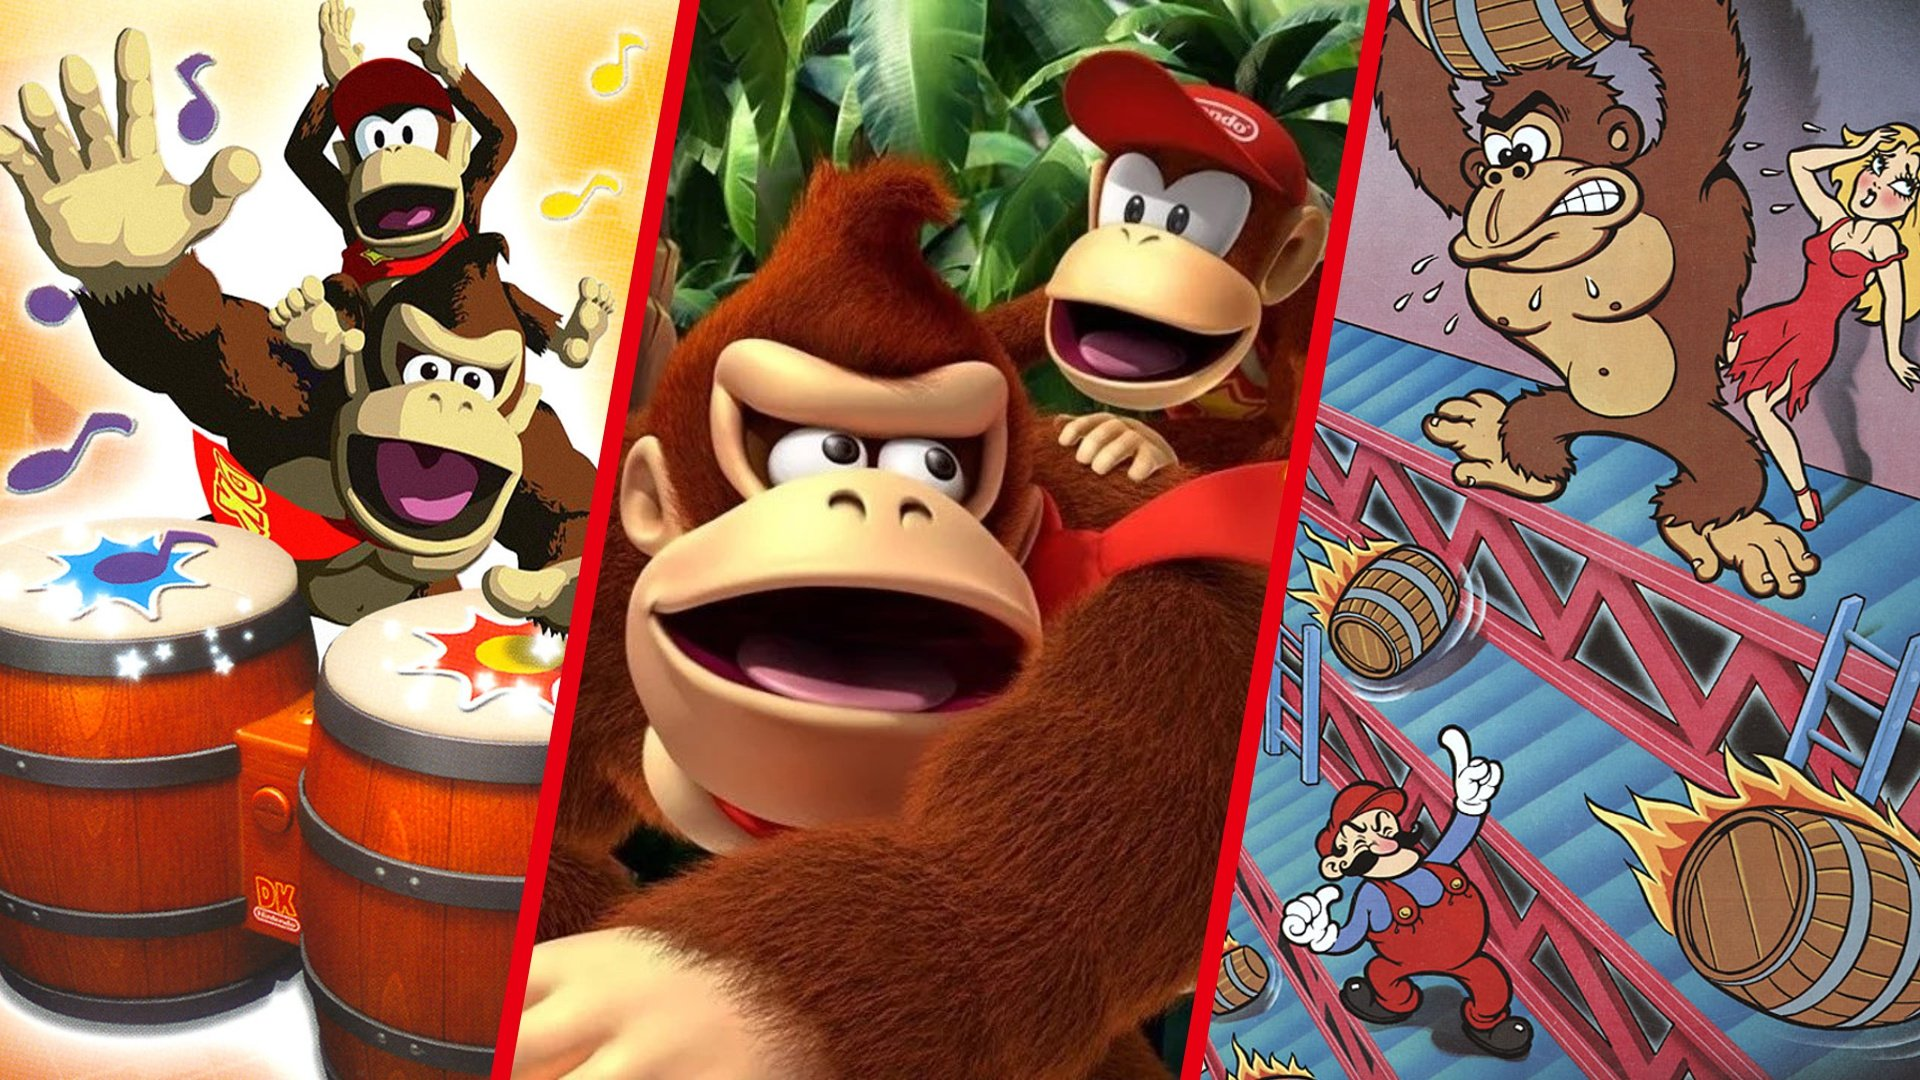 Feature: Best Donkey Kong Games Of All Time